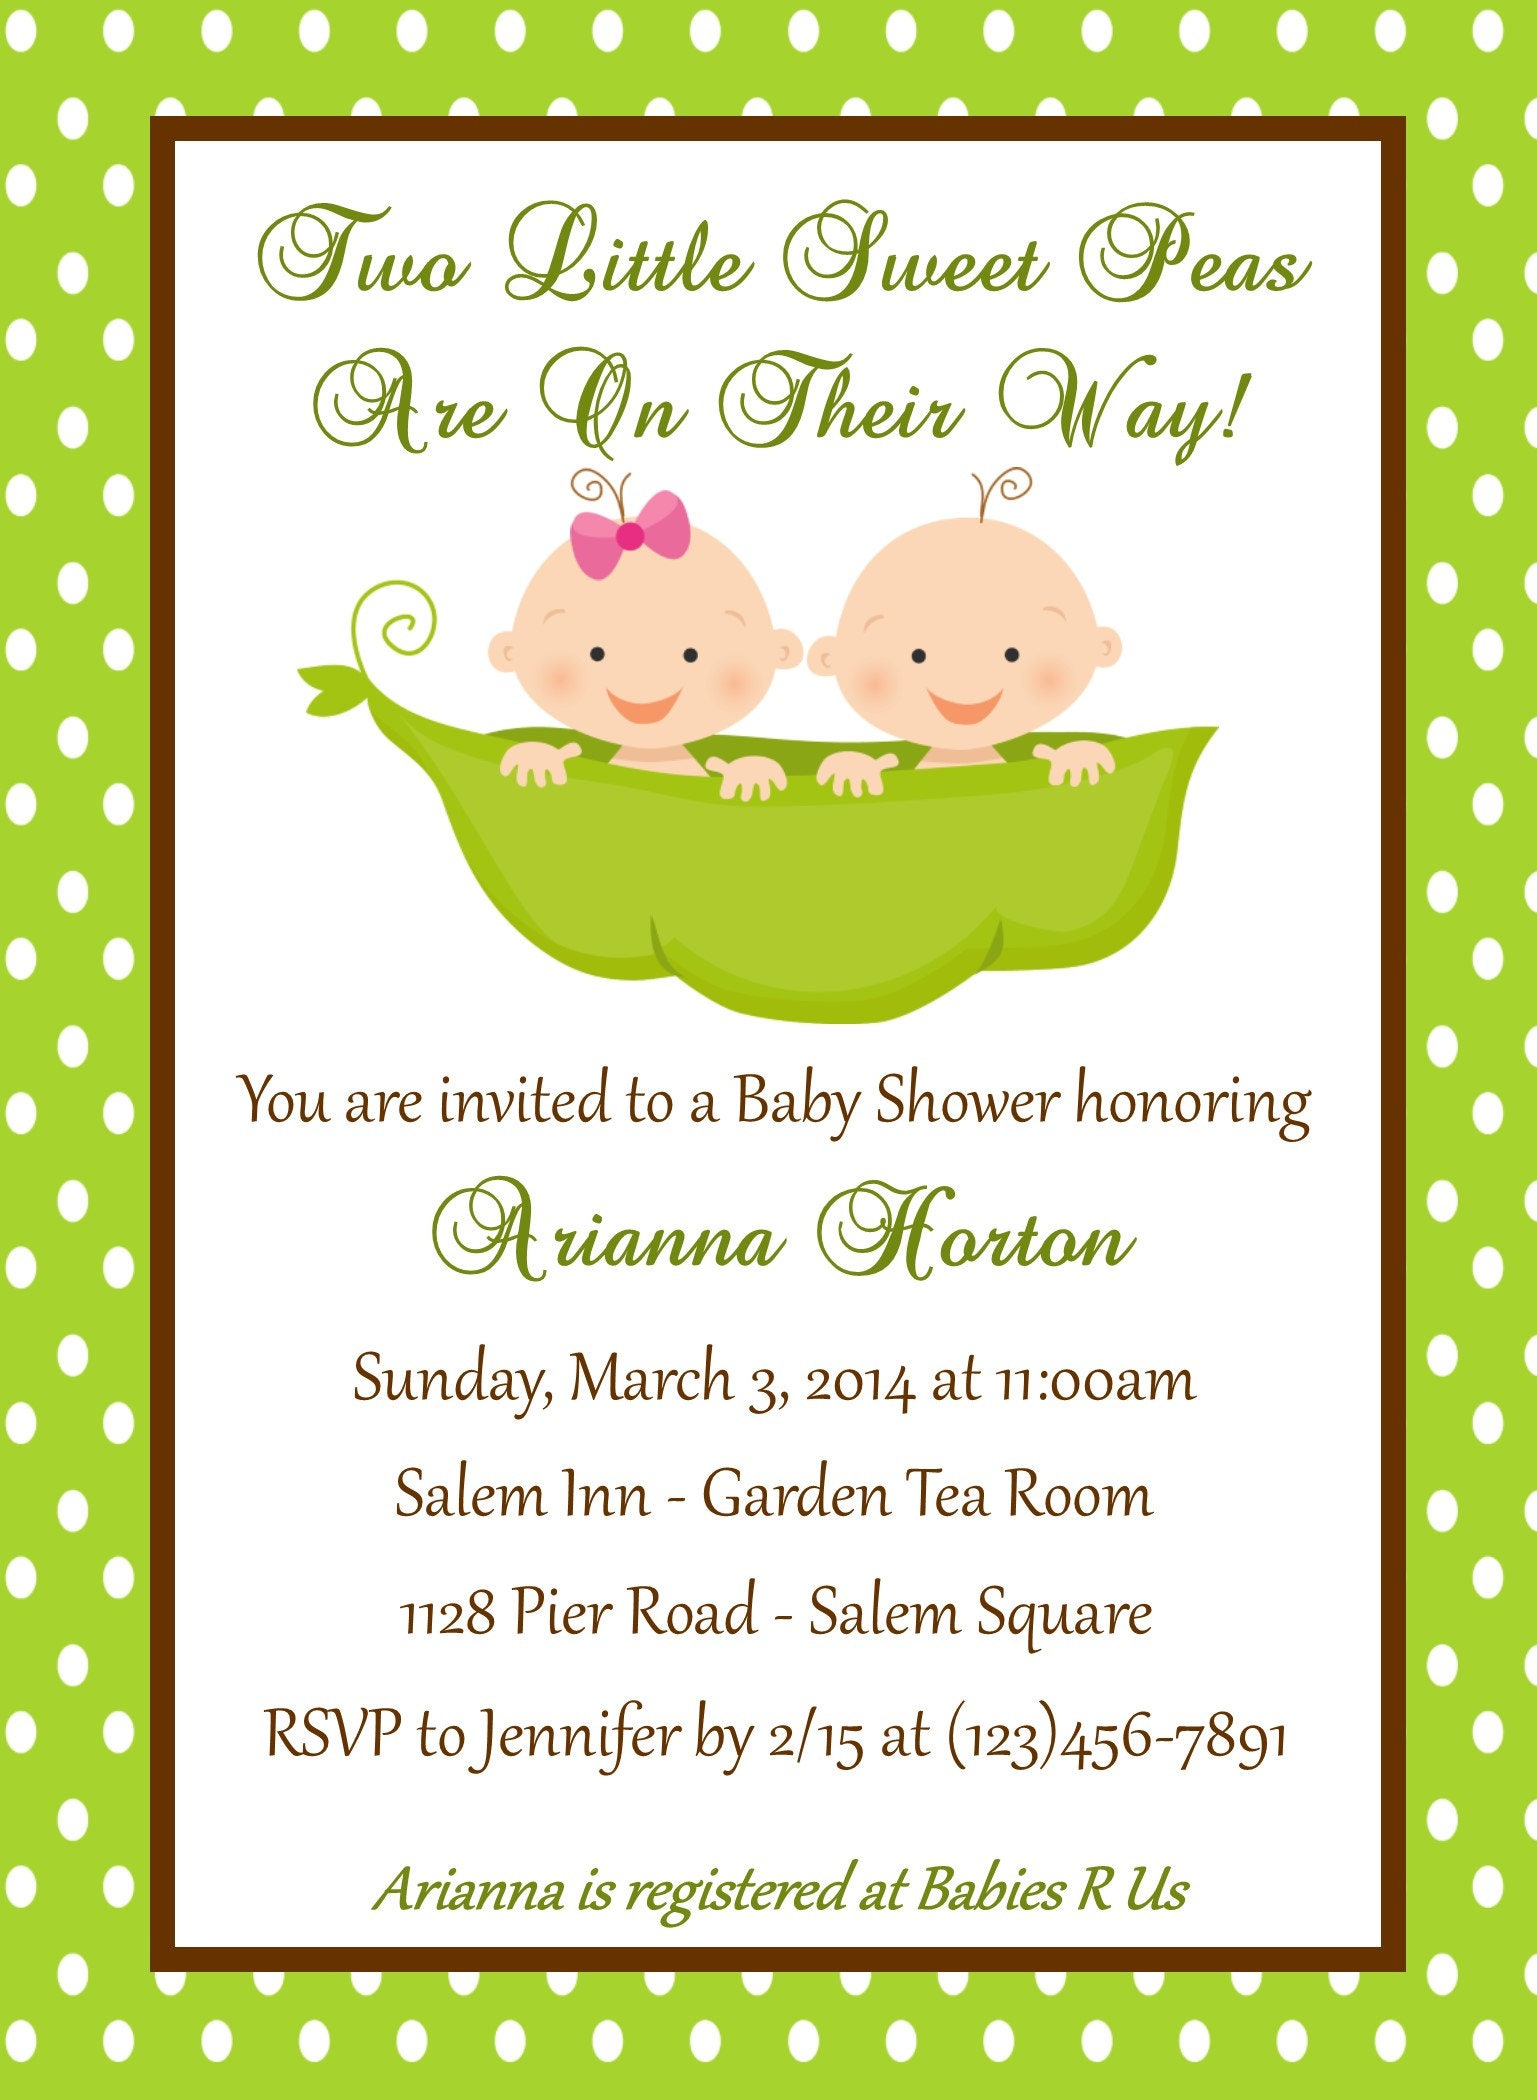 Twin Baby Shower Invitation Peas in a Pod Printable